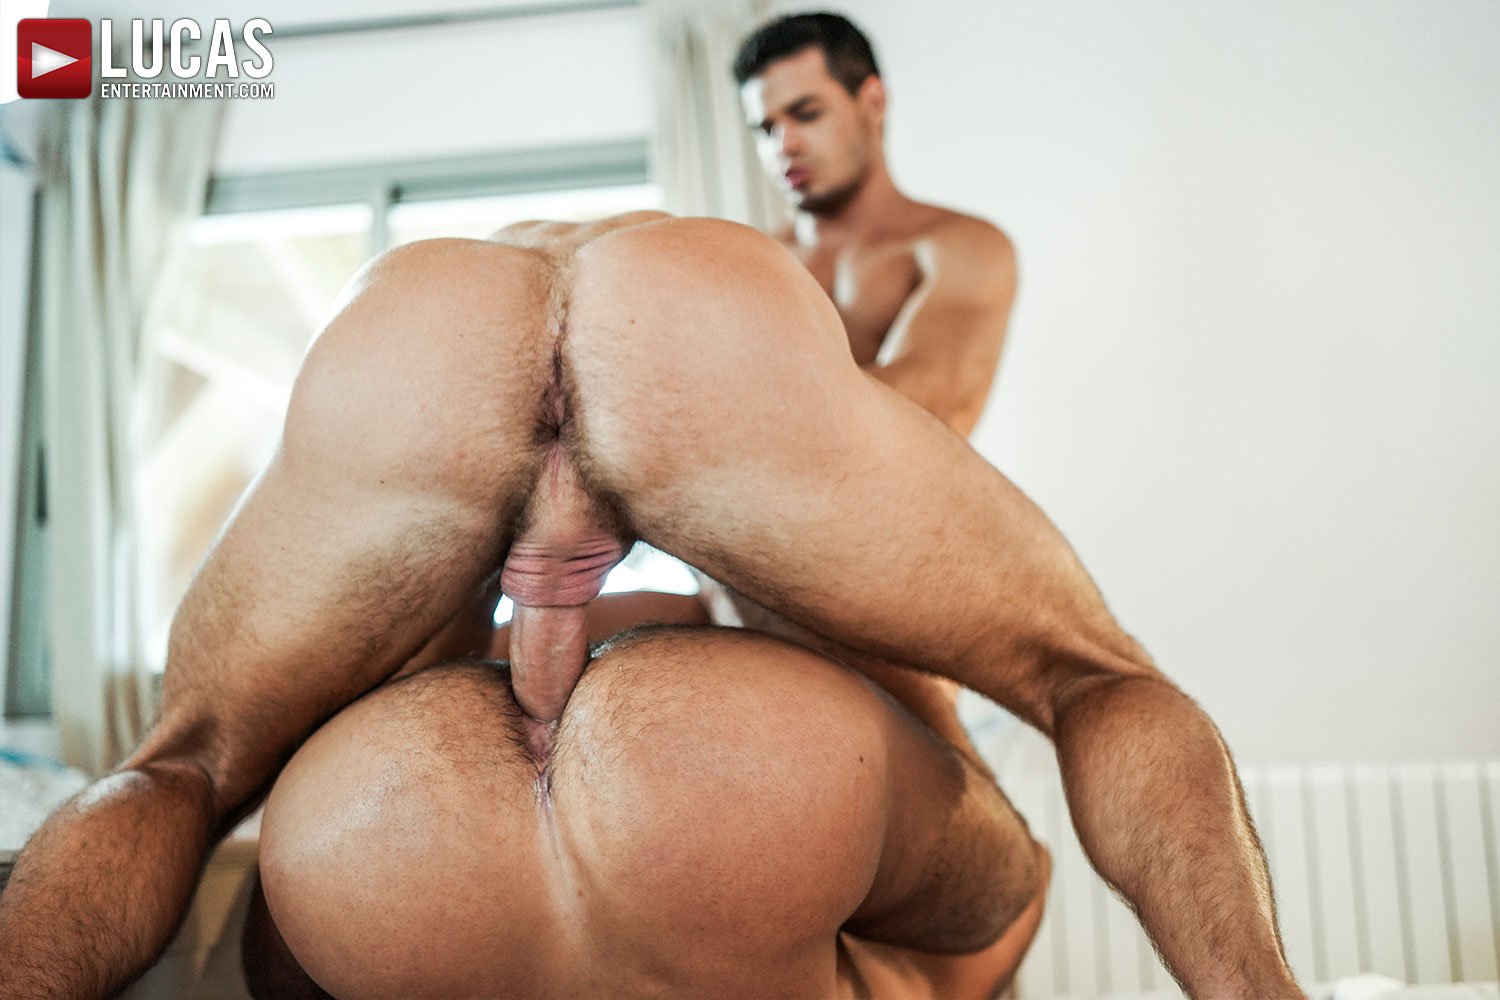 locura gay videos videos xxx hd